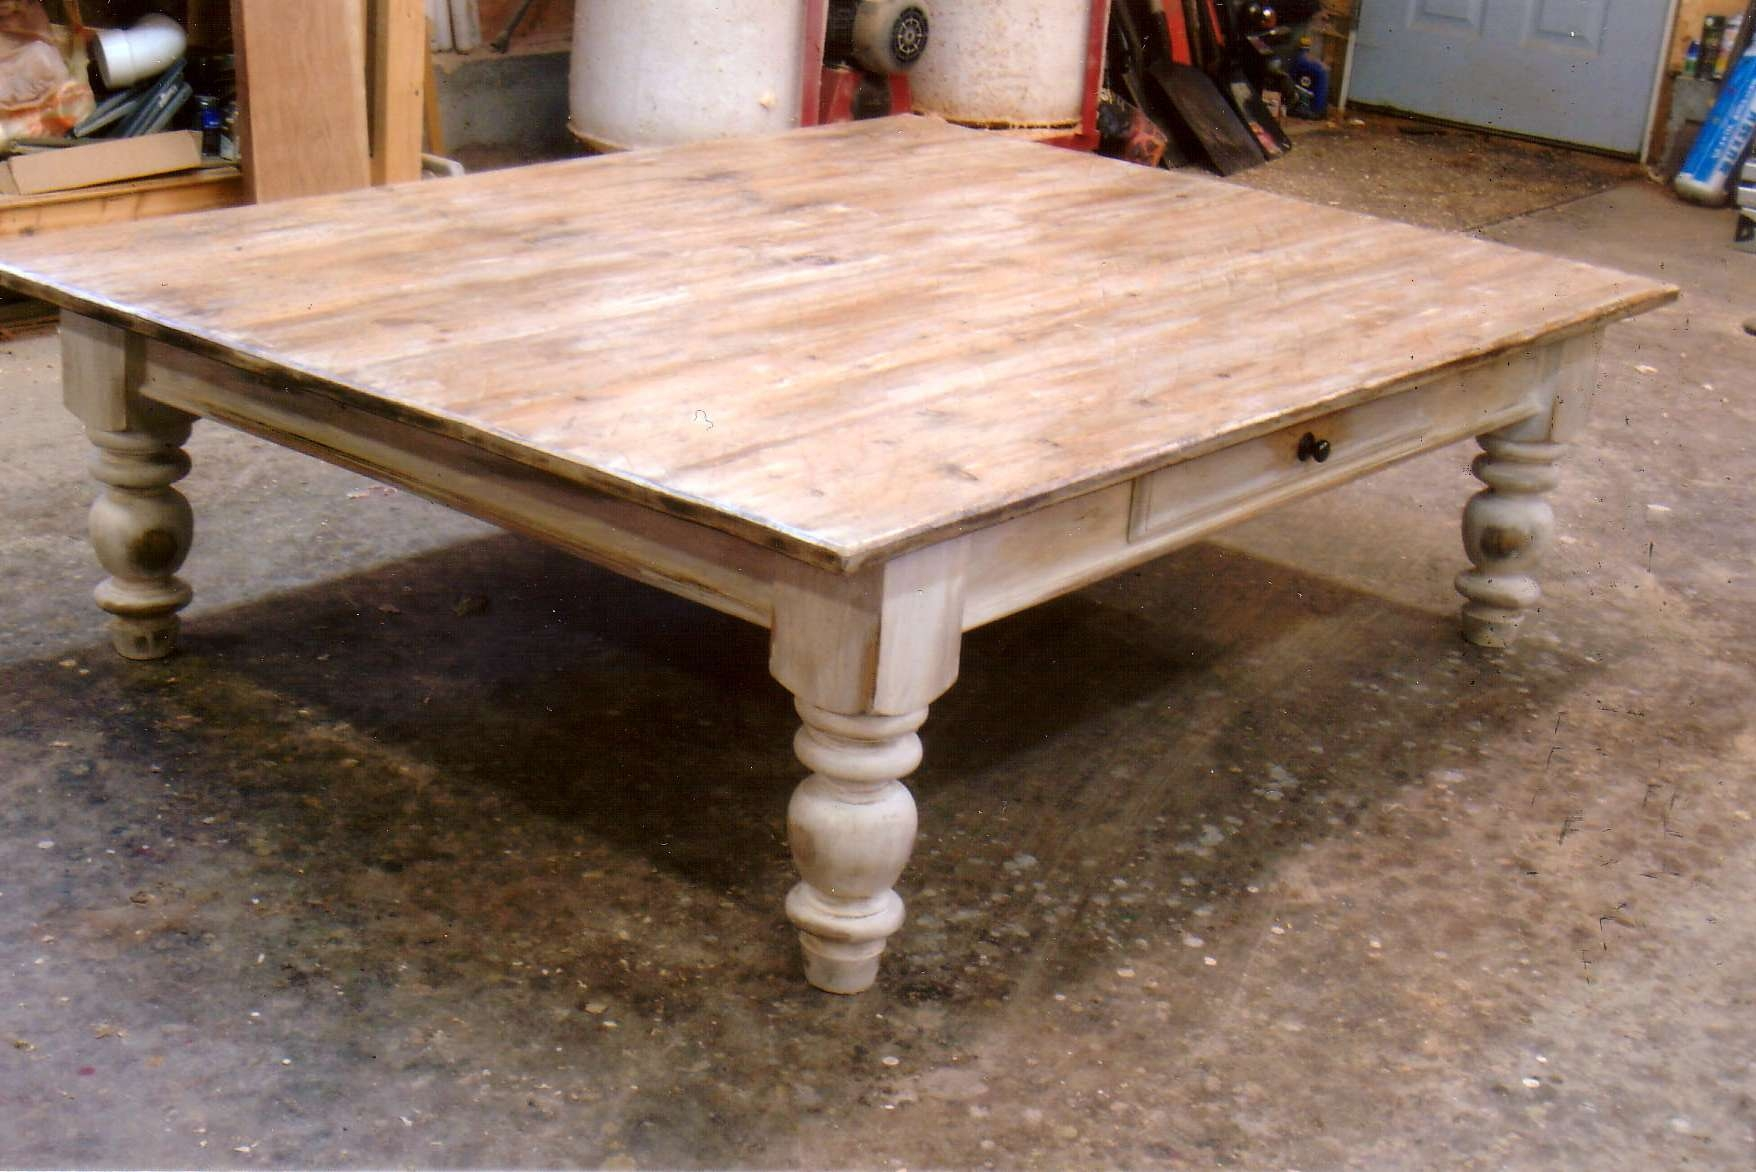 Most Recently Released Square Wooden Coffee Table Throughout Coffee Table : Fabulous Oversized Square Coffee Table Square Wood (View 15 of 20)